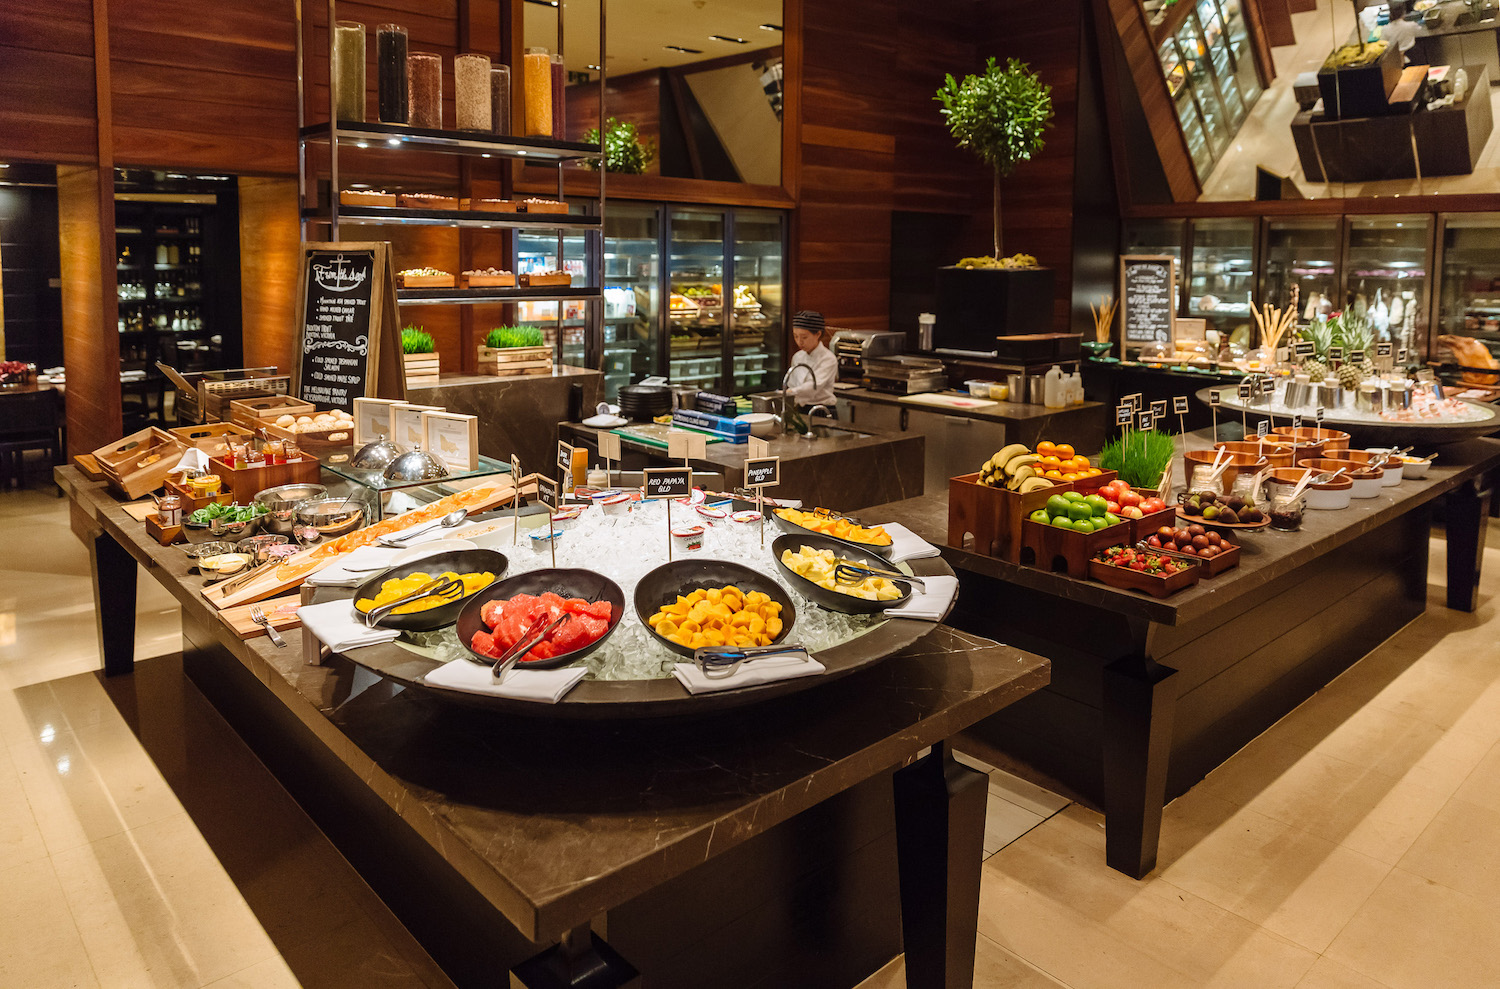 Buffet Breakfast at Grand Hyatt Melbourne Hotel